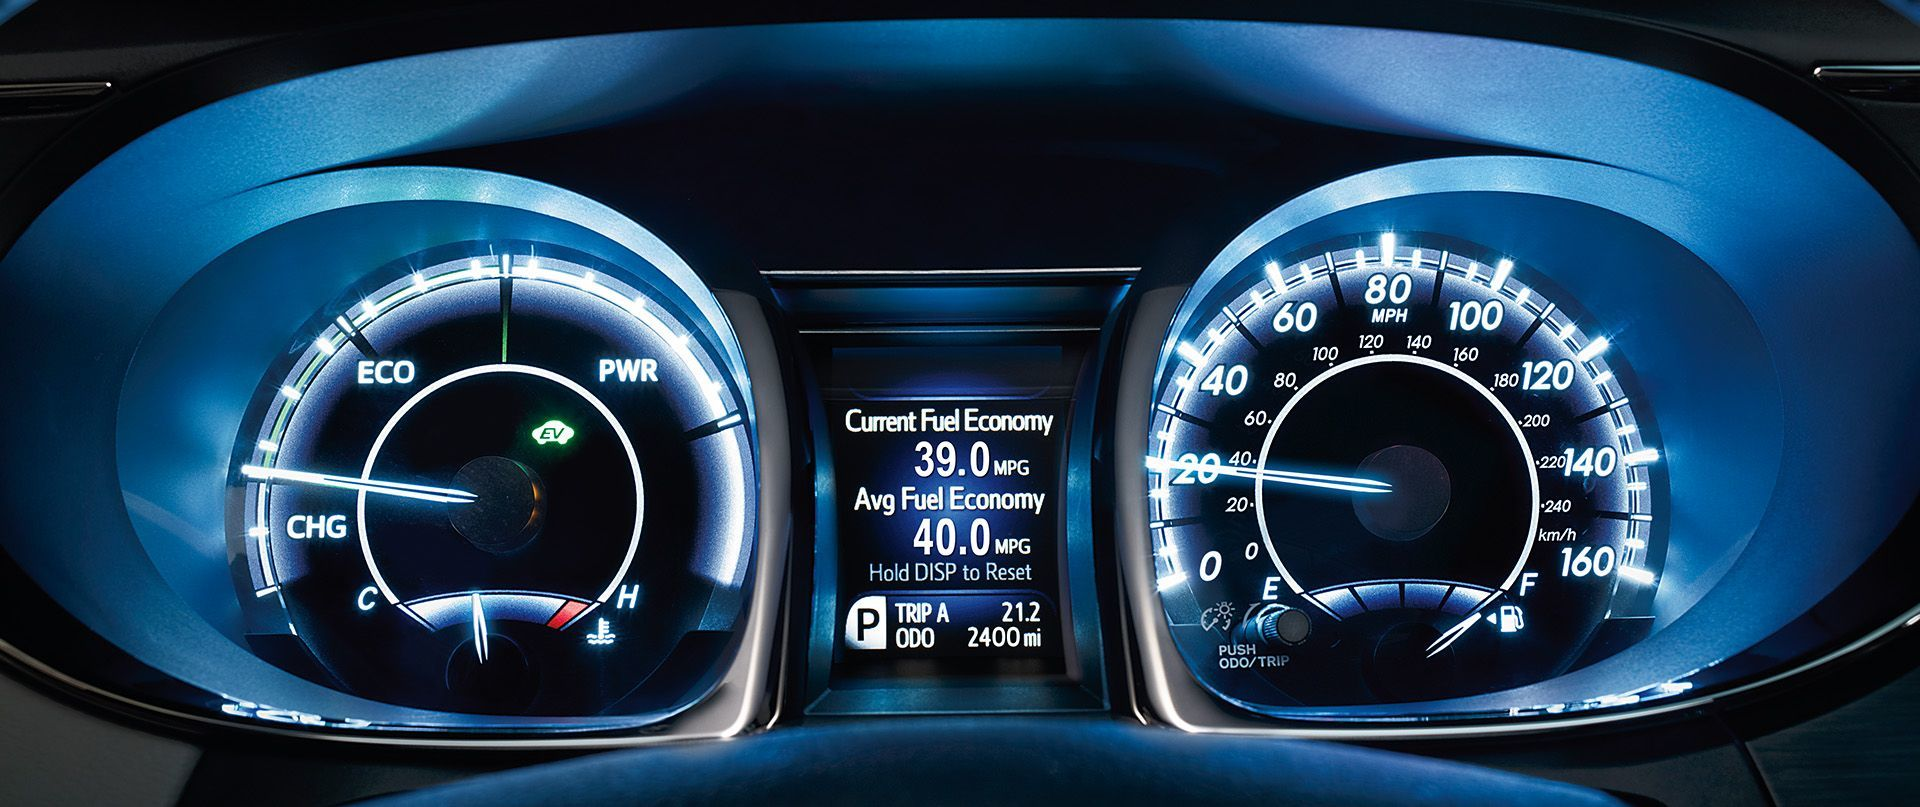 TFT Multi-Information Display in the 2017 Avalon Hybrid